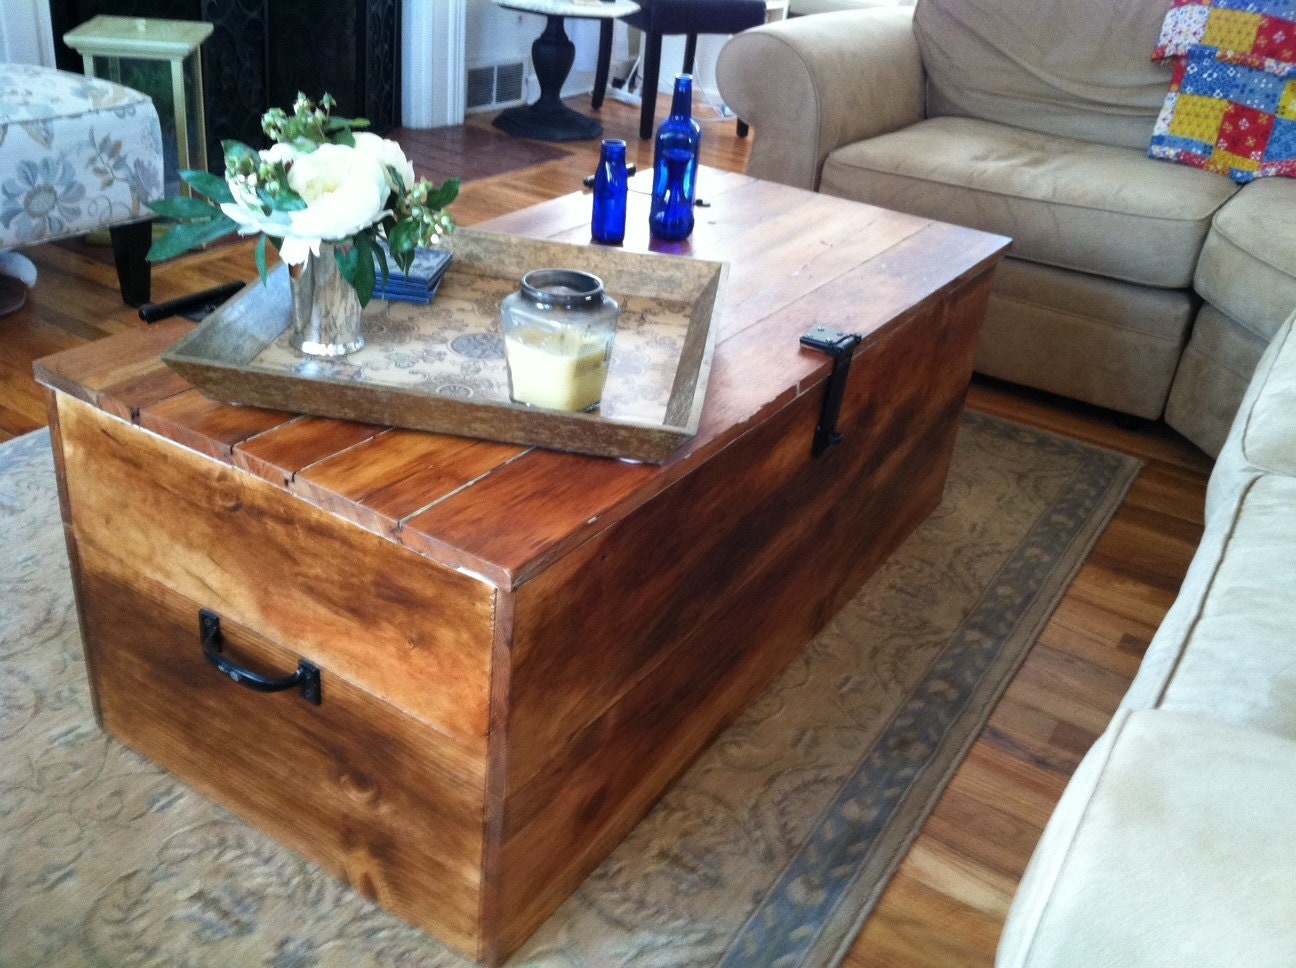 Crate Coffee Table - Anything & EverythingAnything ... |Wooden Crate Coffee Table